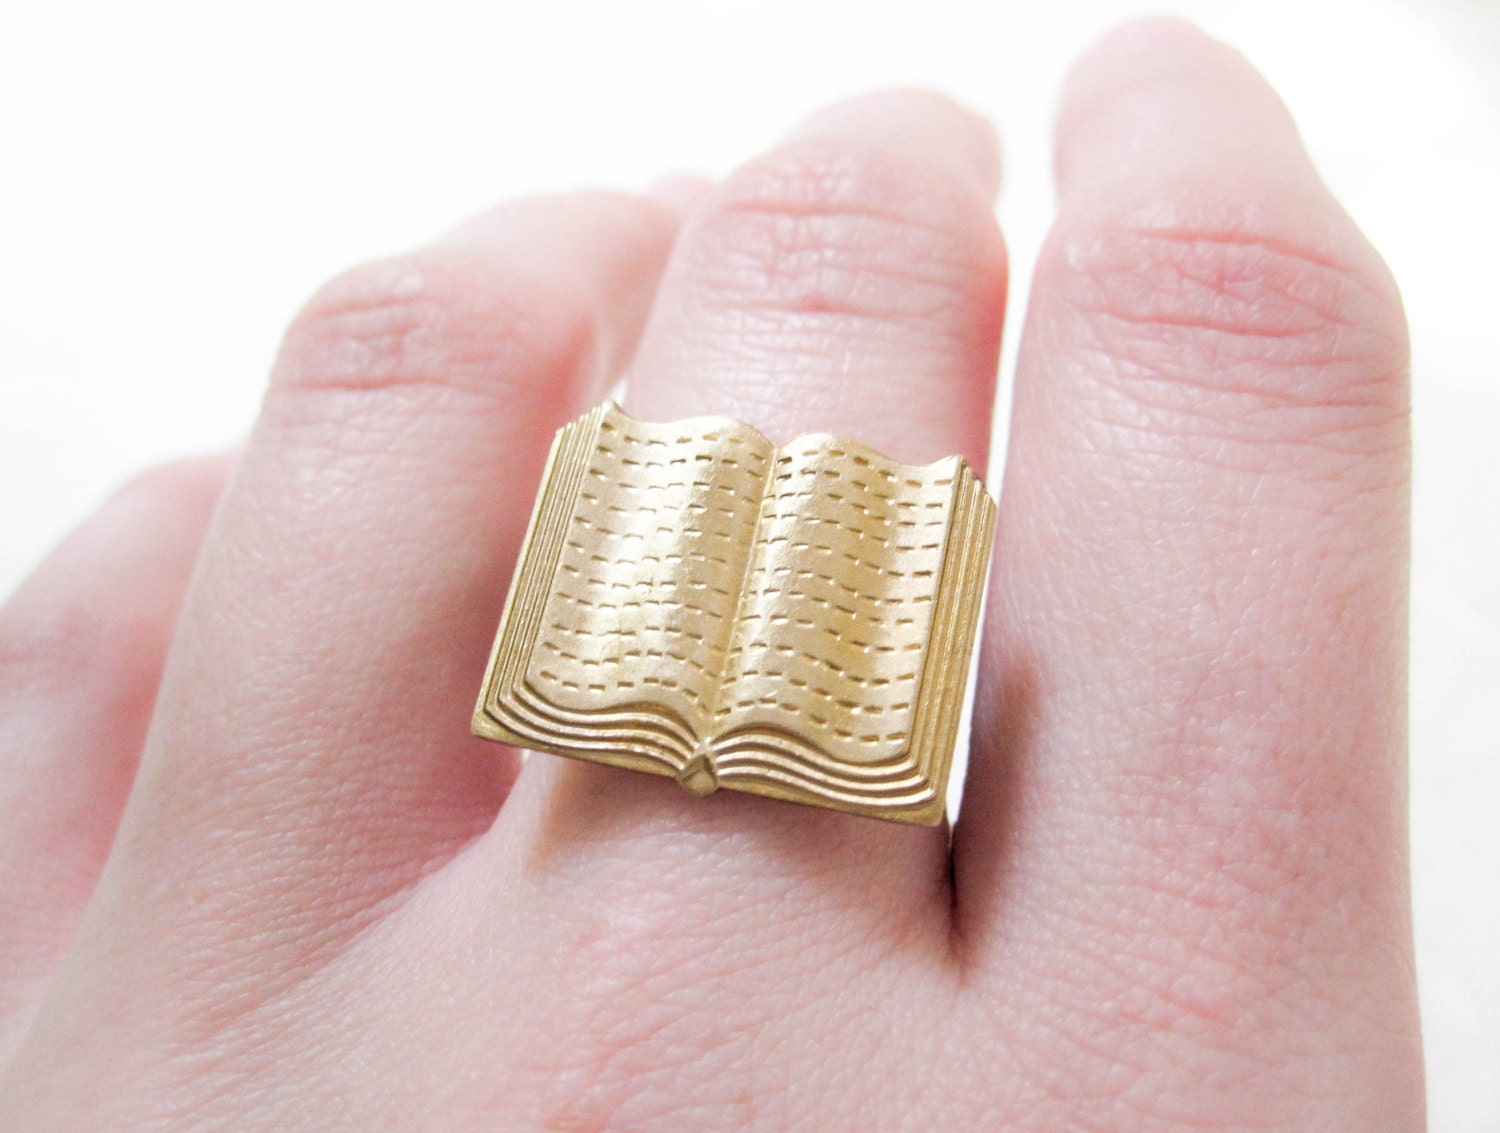 Book Ring Brass Jewelry Novelty Ring Librarian Book